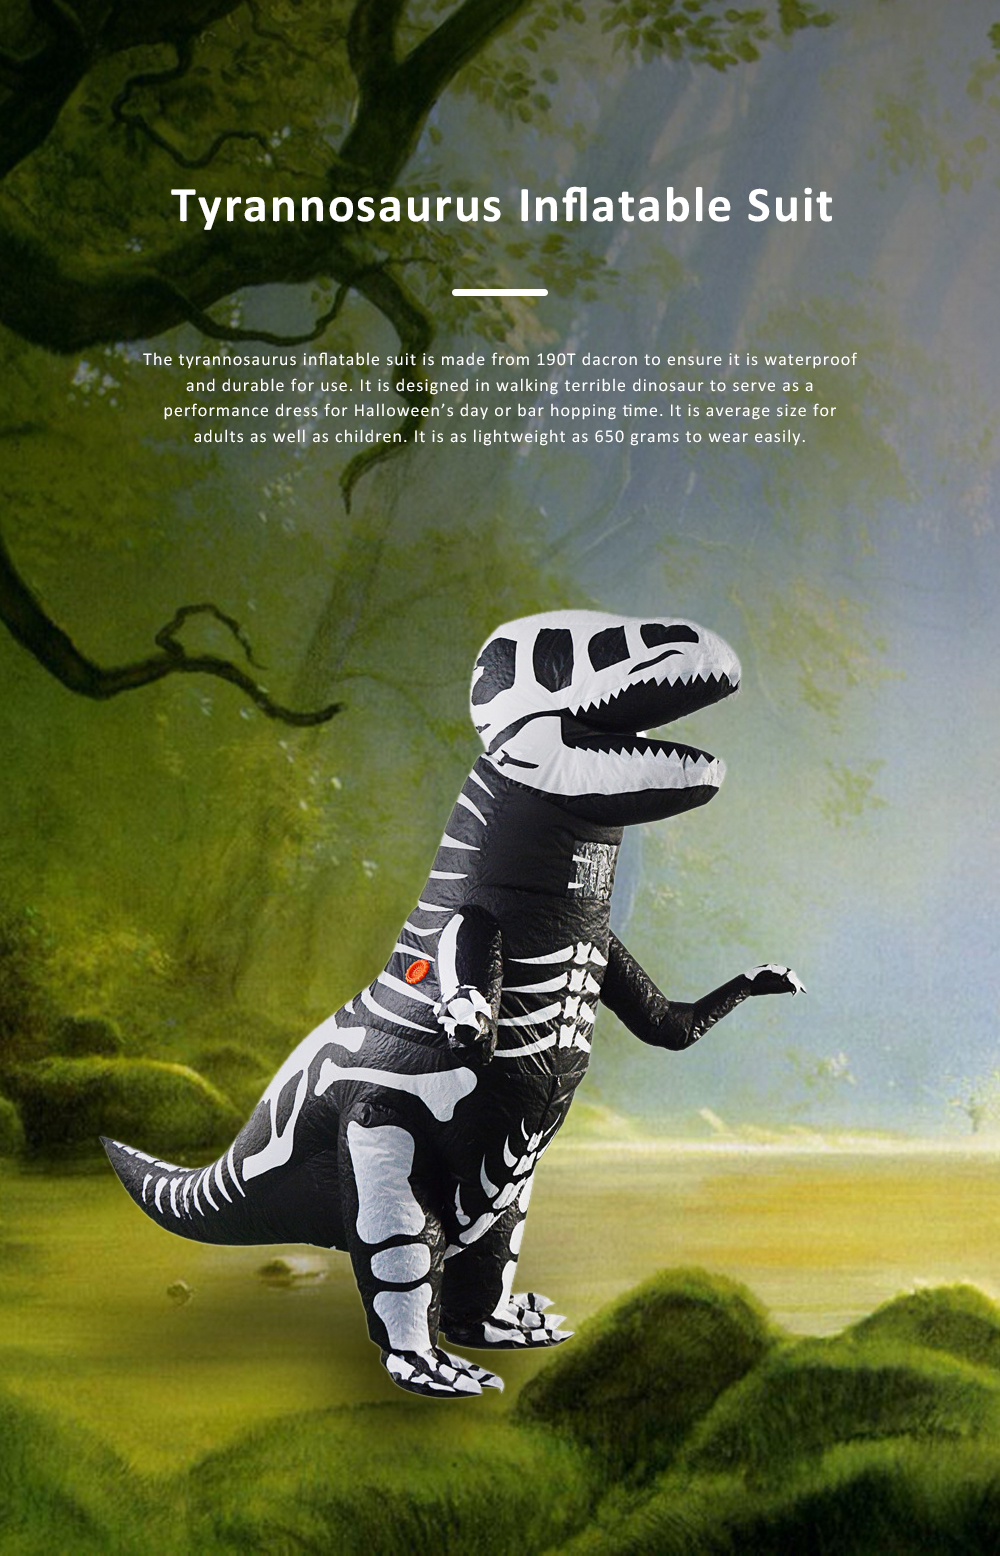 Tyrannosaurus Inflatable Suit for Halloween's Day Performance Waterproof Durable Walking Dinosaur Inflated Pressure Dress Inflatable Costume 0